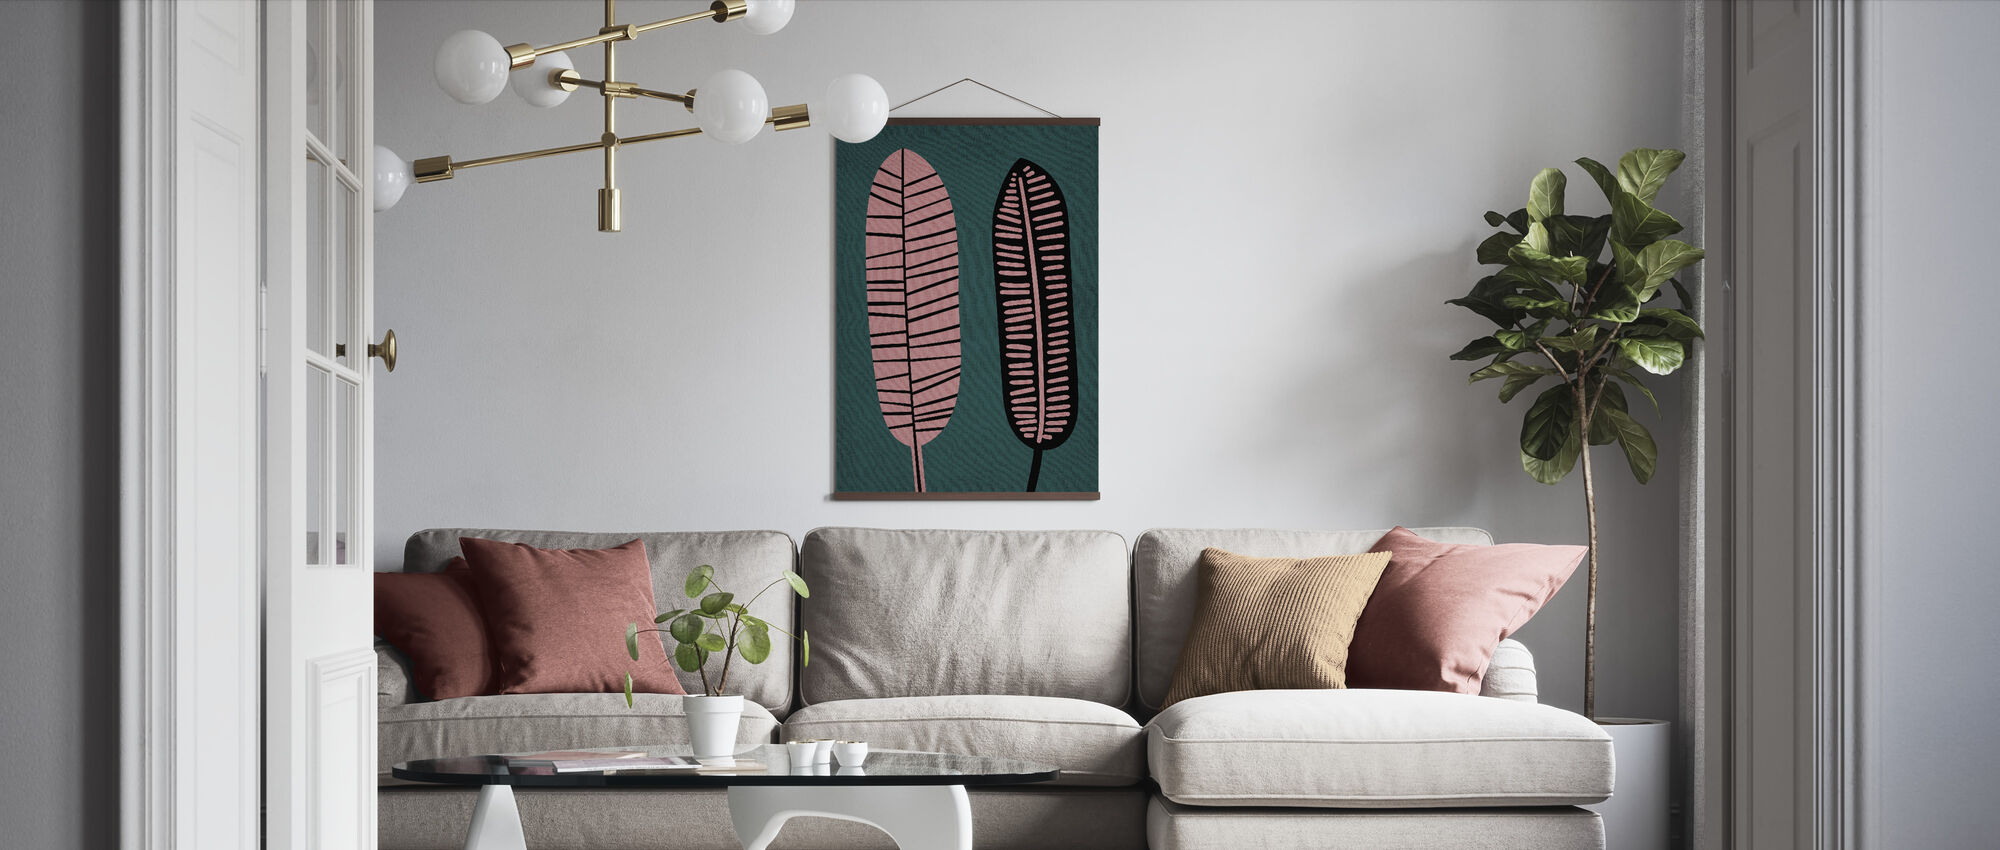 Two Leafs - Poster - Living Room